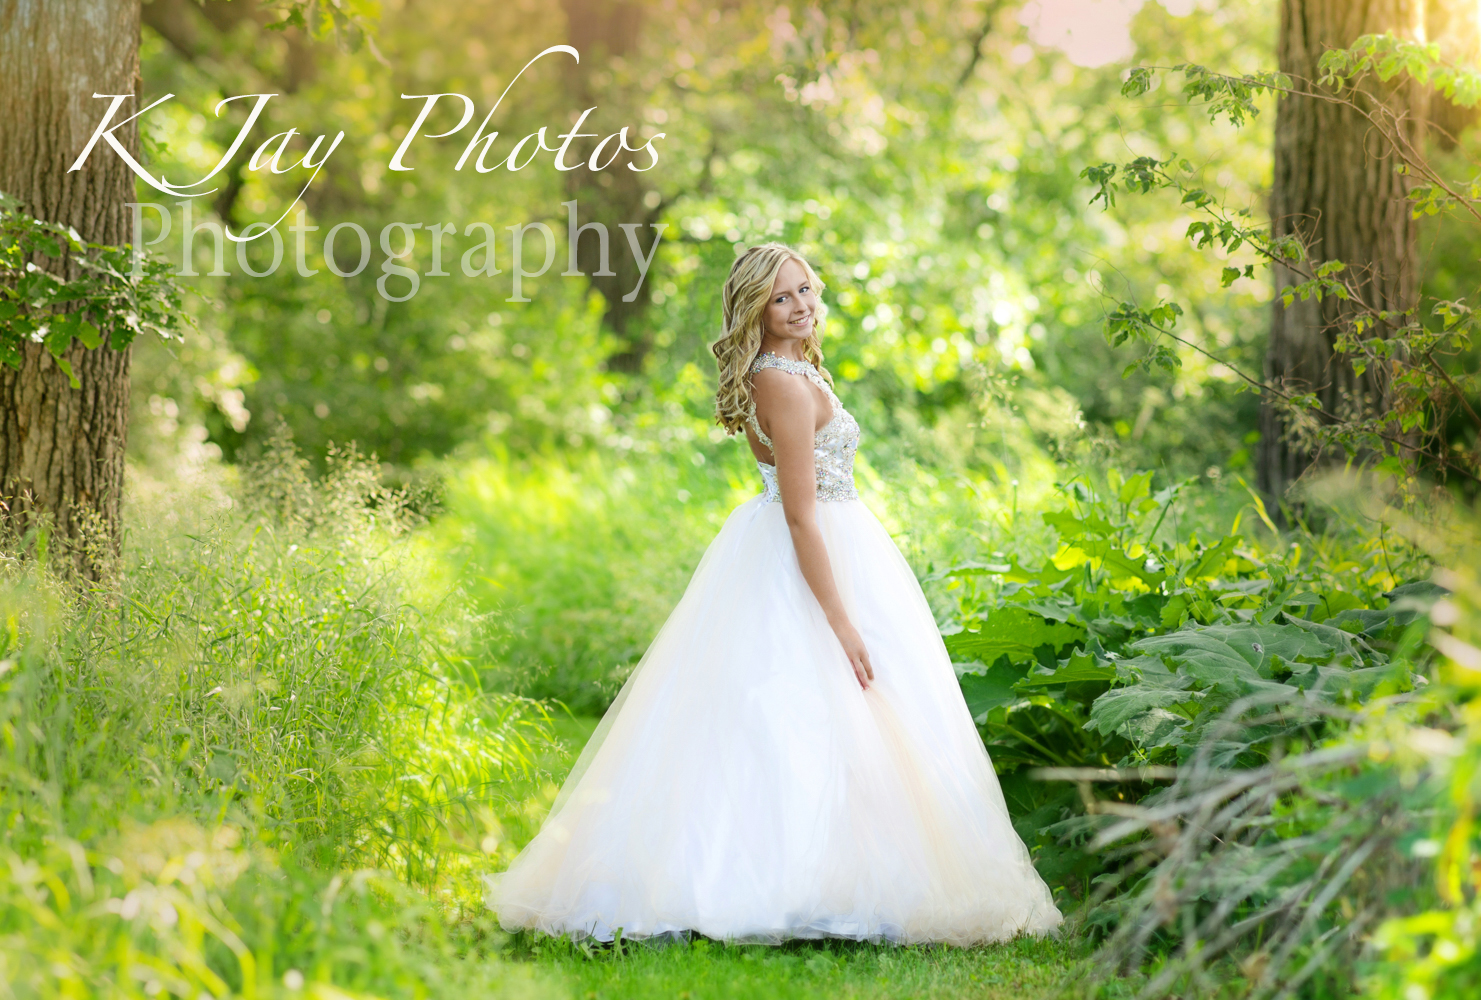 prom dress senior pictures Archives - KJay Portraits, Photography ...